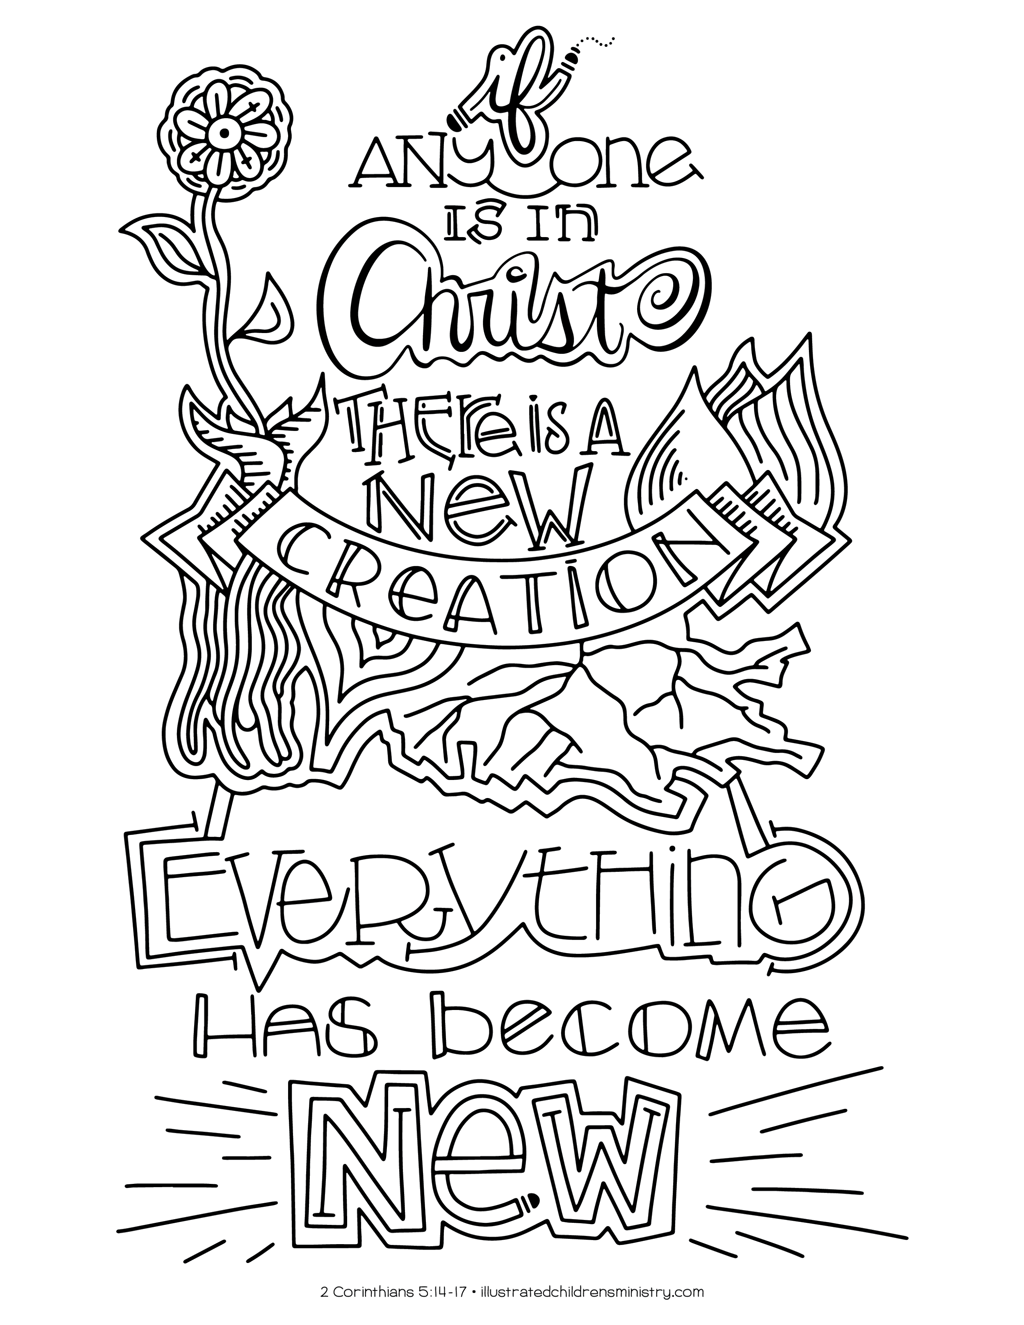 """Everything has become new"" coloring page"